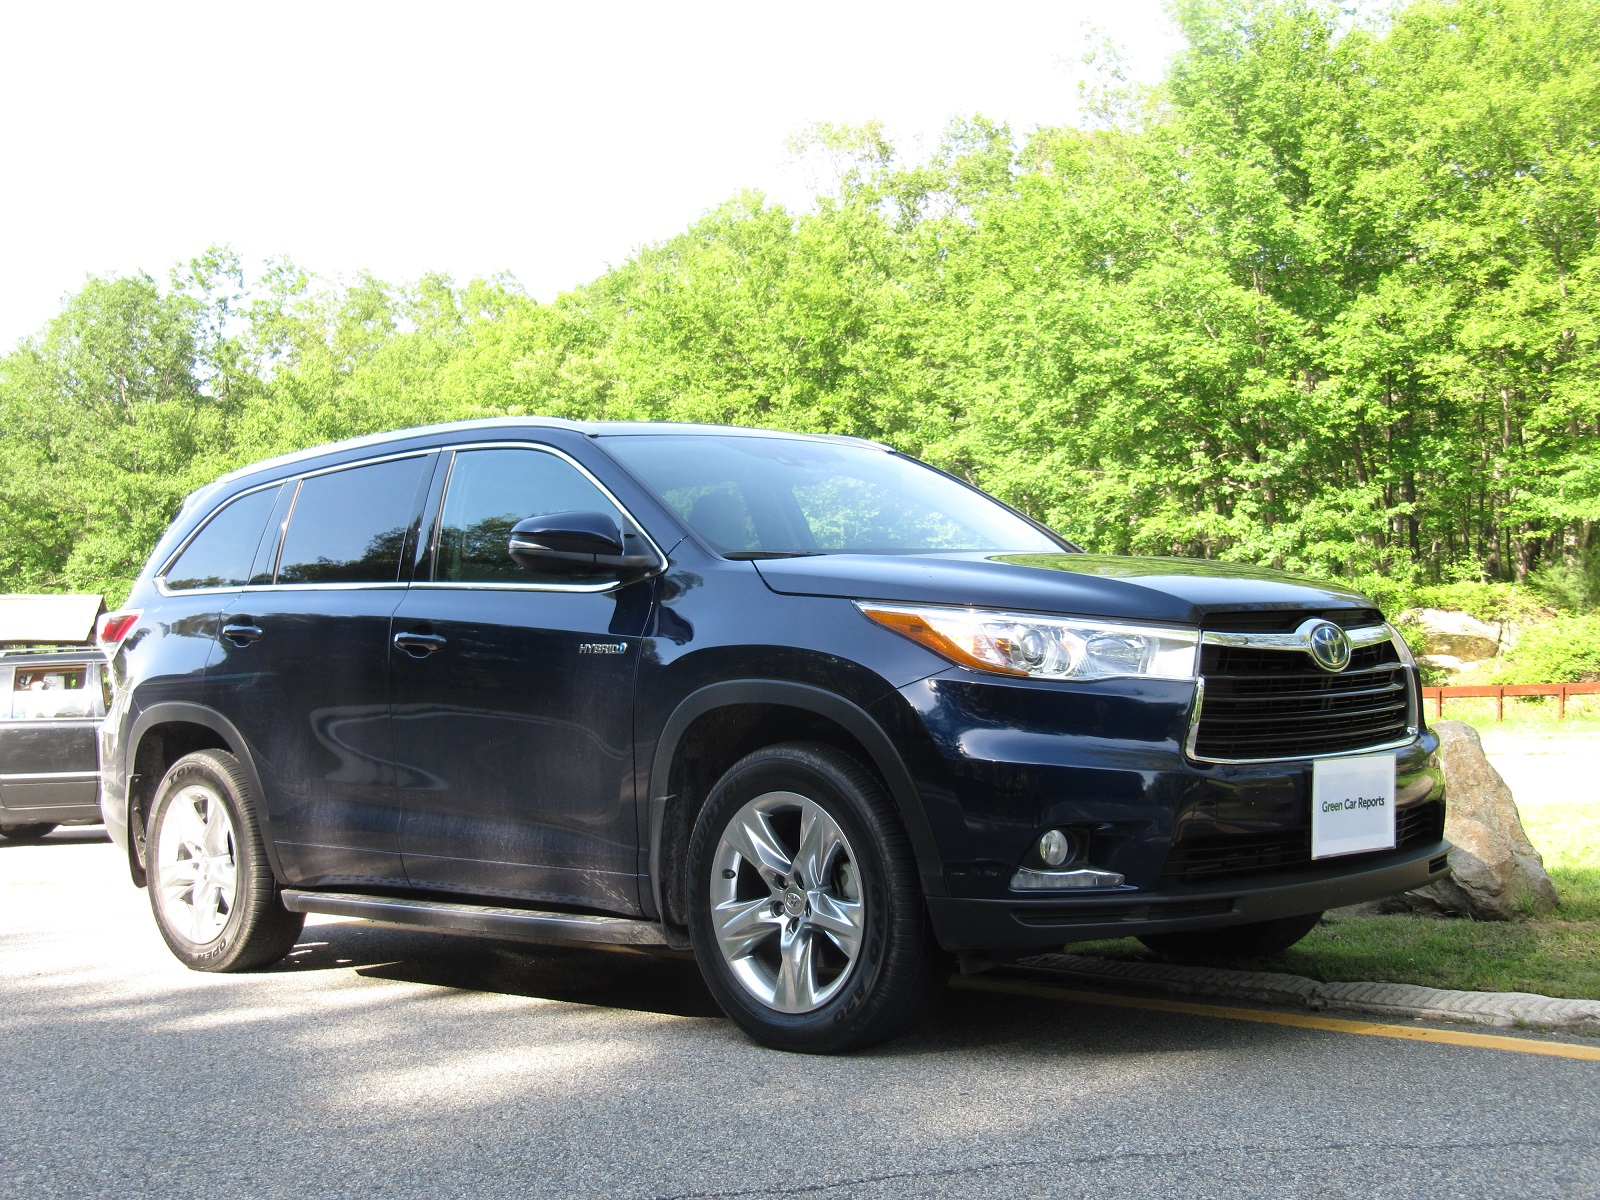 2014 Toyota Highlander Hybrid Gas Mileage Review